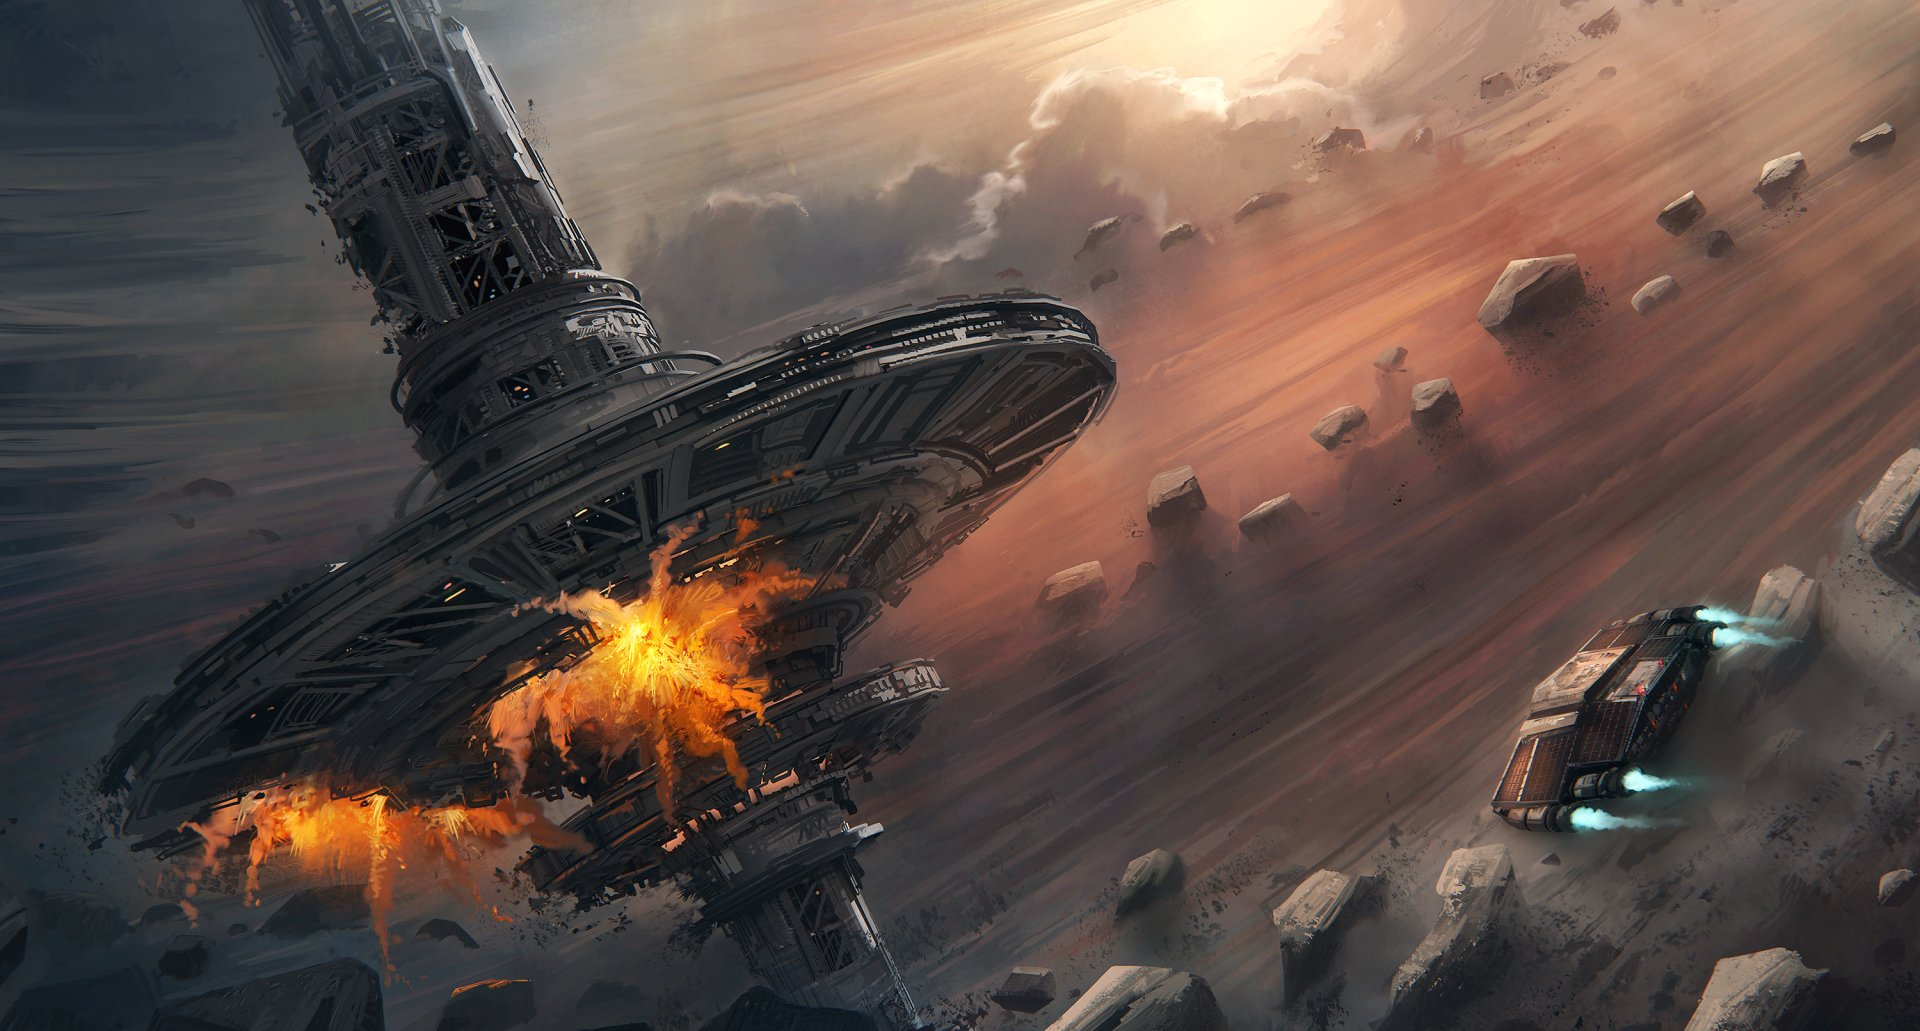 Sci Fi - Space Station  Spaceship Asteroid Explosion Wallpaper